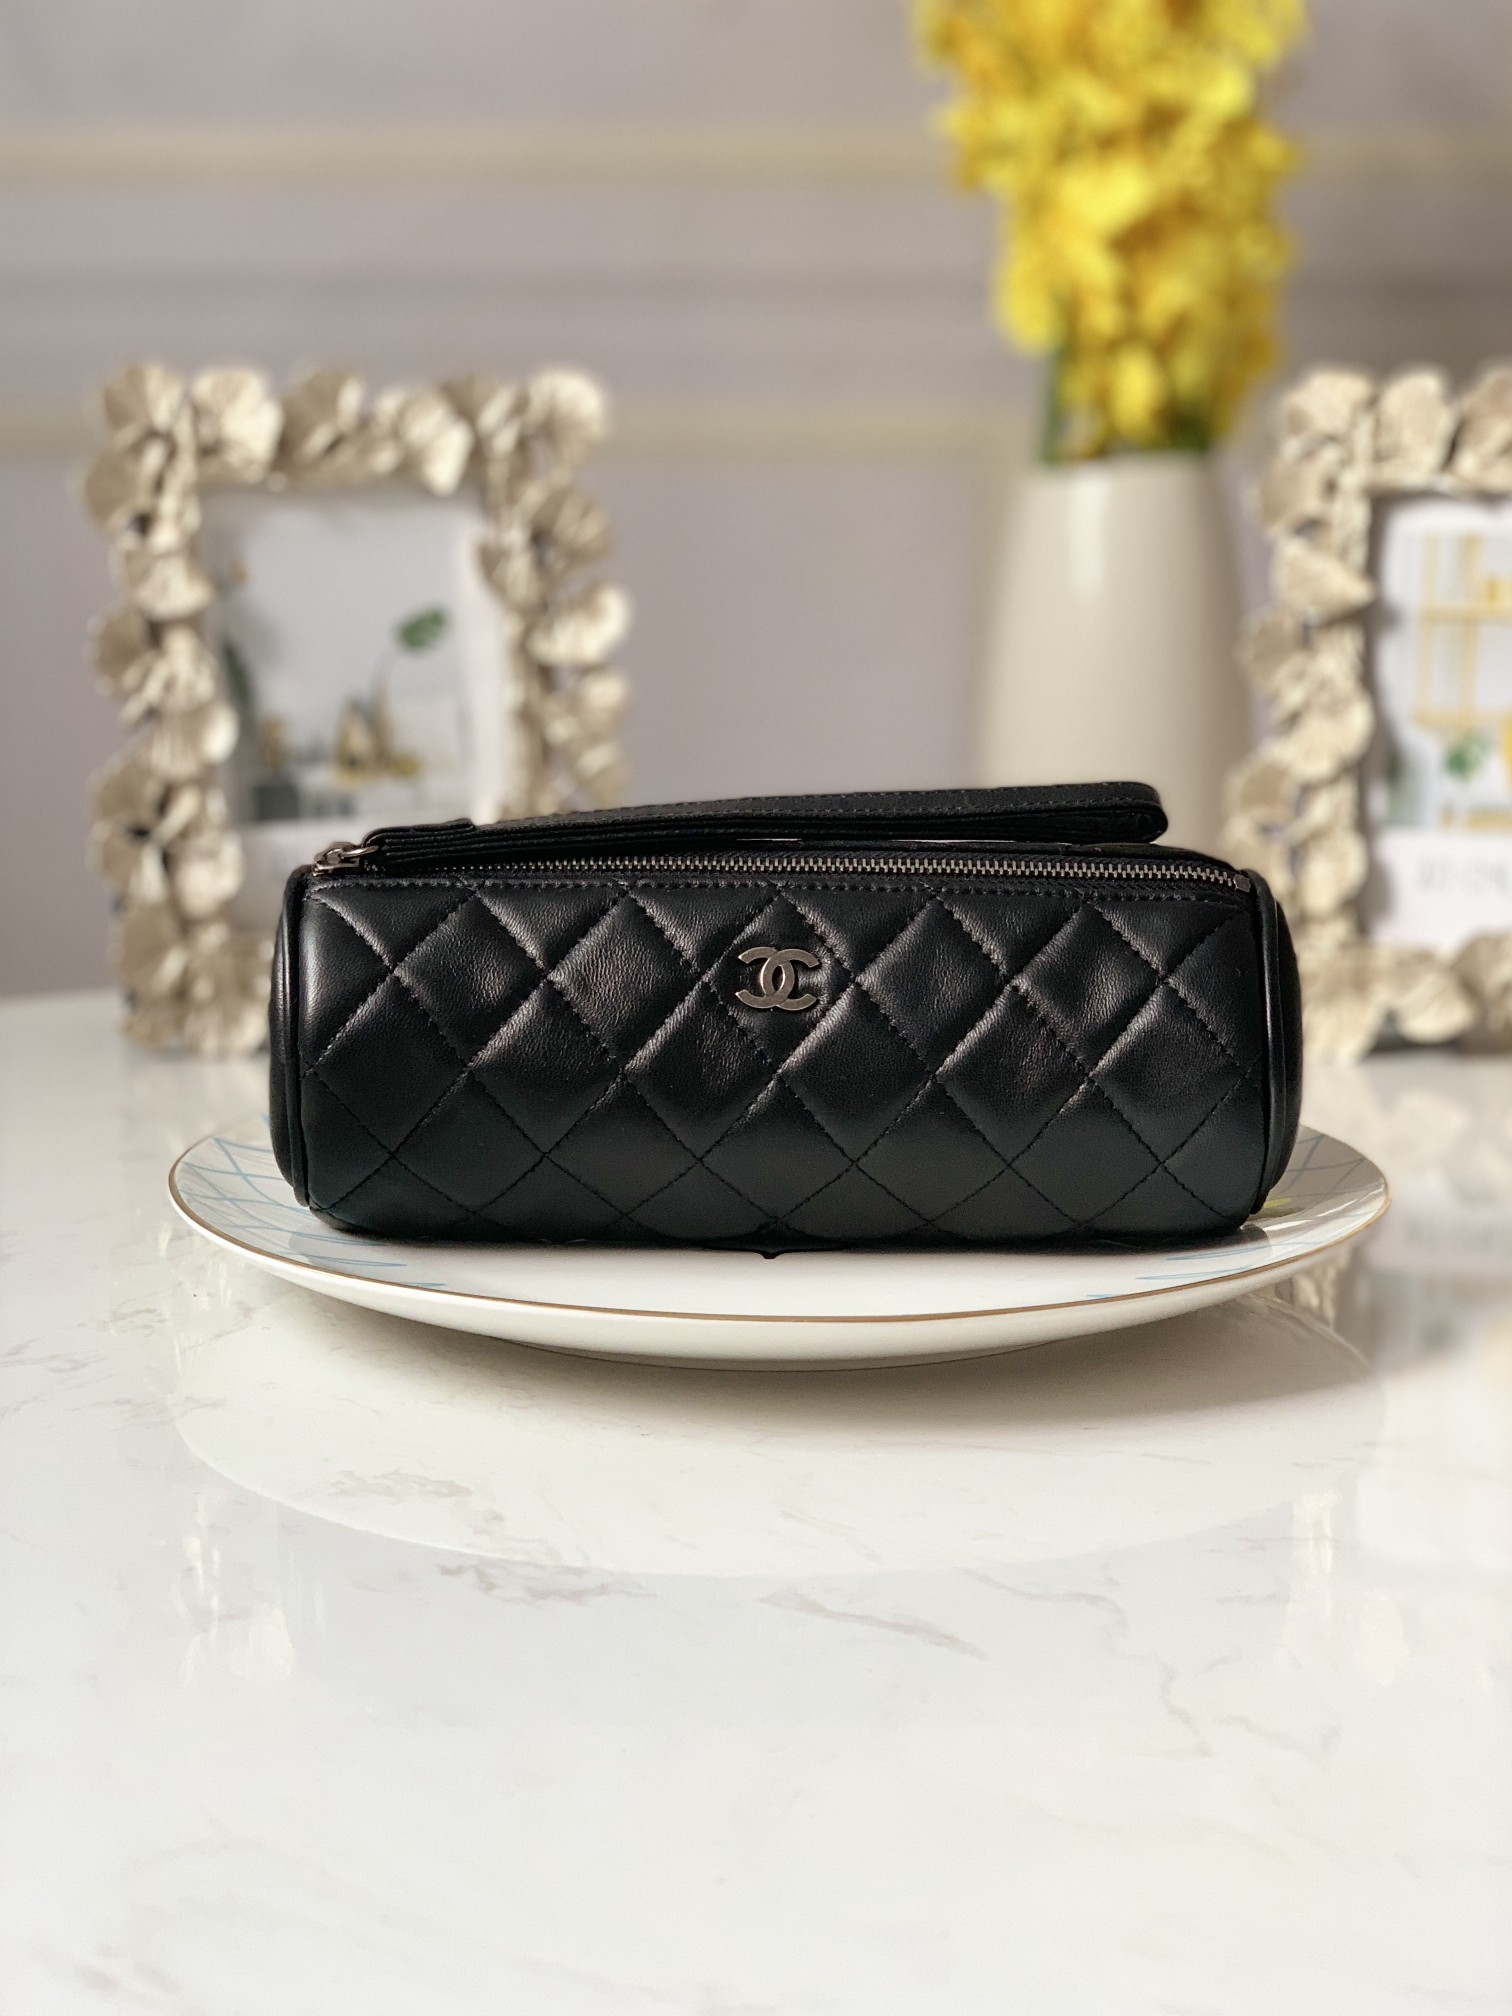 Replica Chanel 6908 Women Cosmetic Bag Black Leather